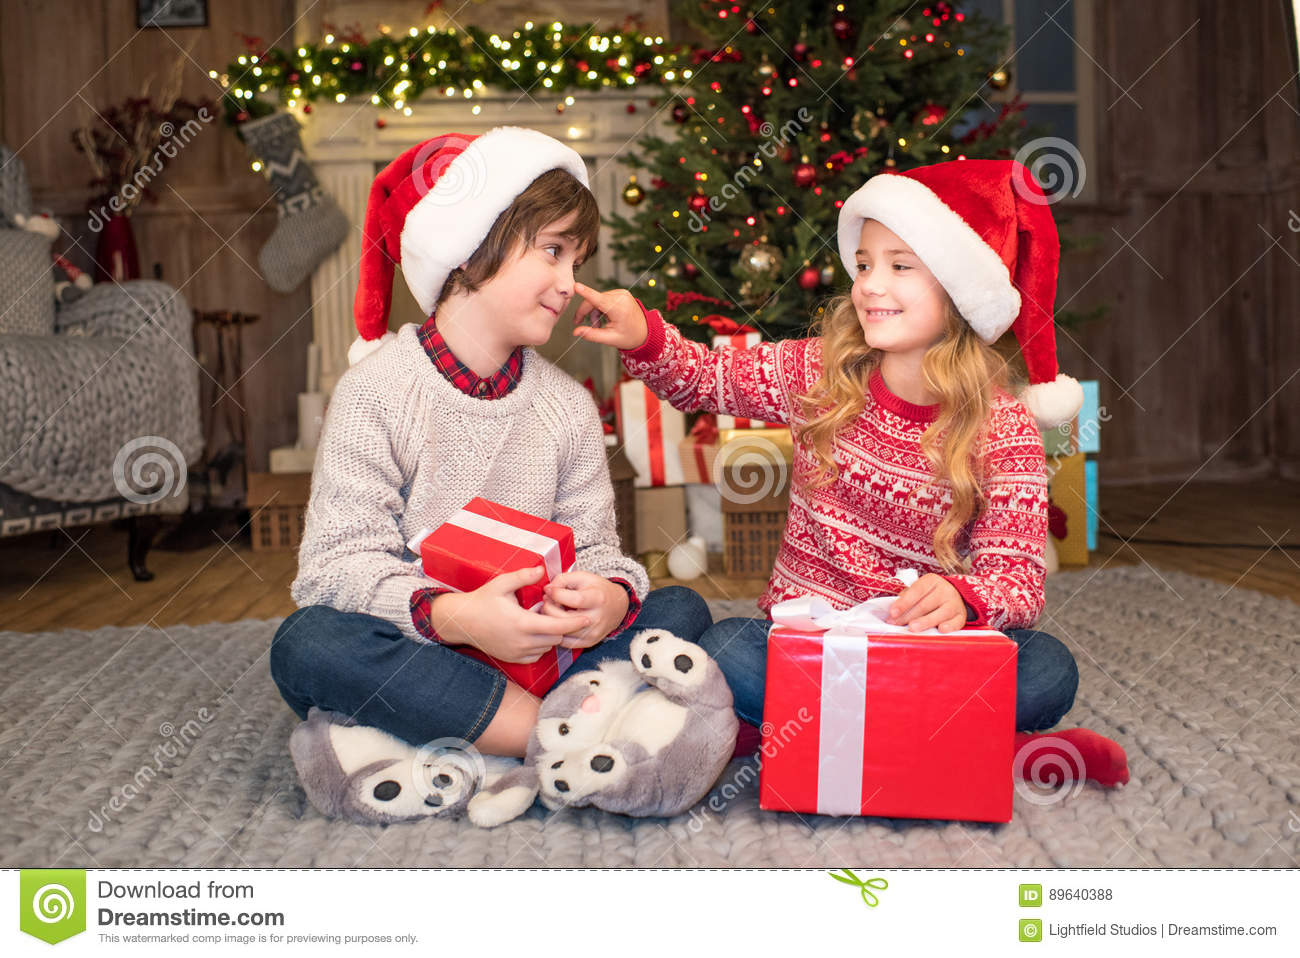 Children In Santa Hats With Christmas Gifts Stock Photo - Image of ...